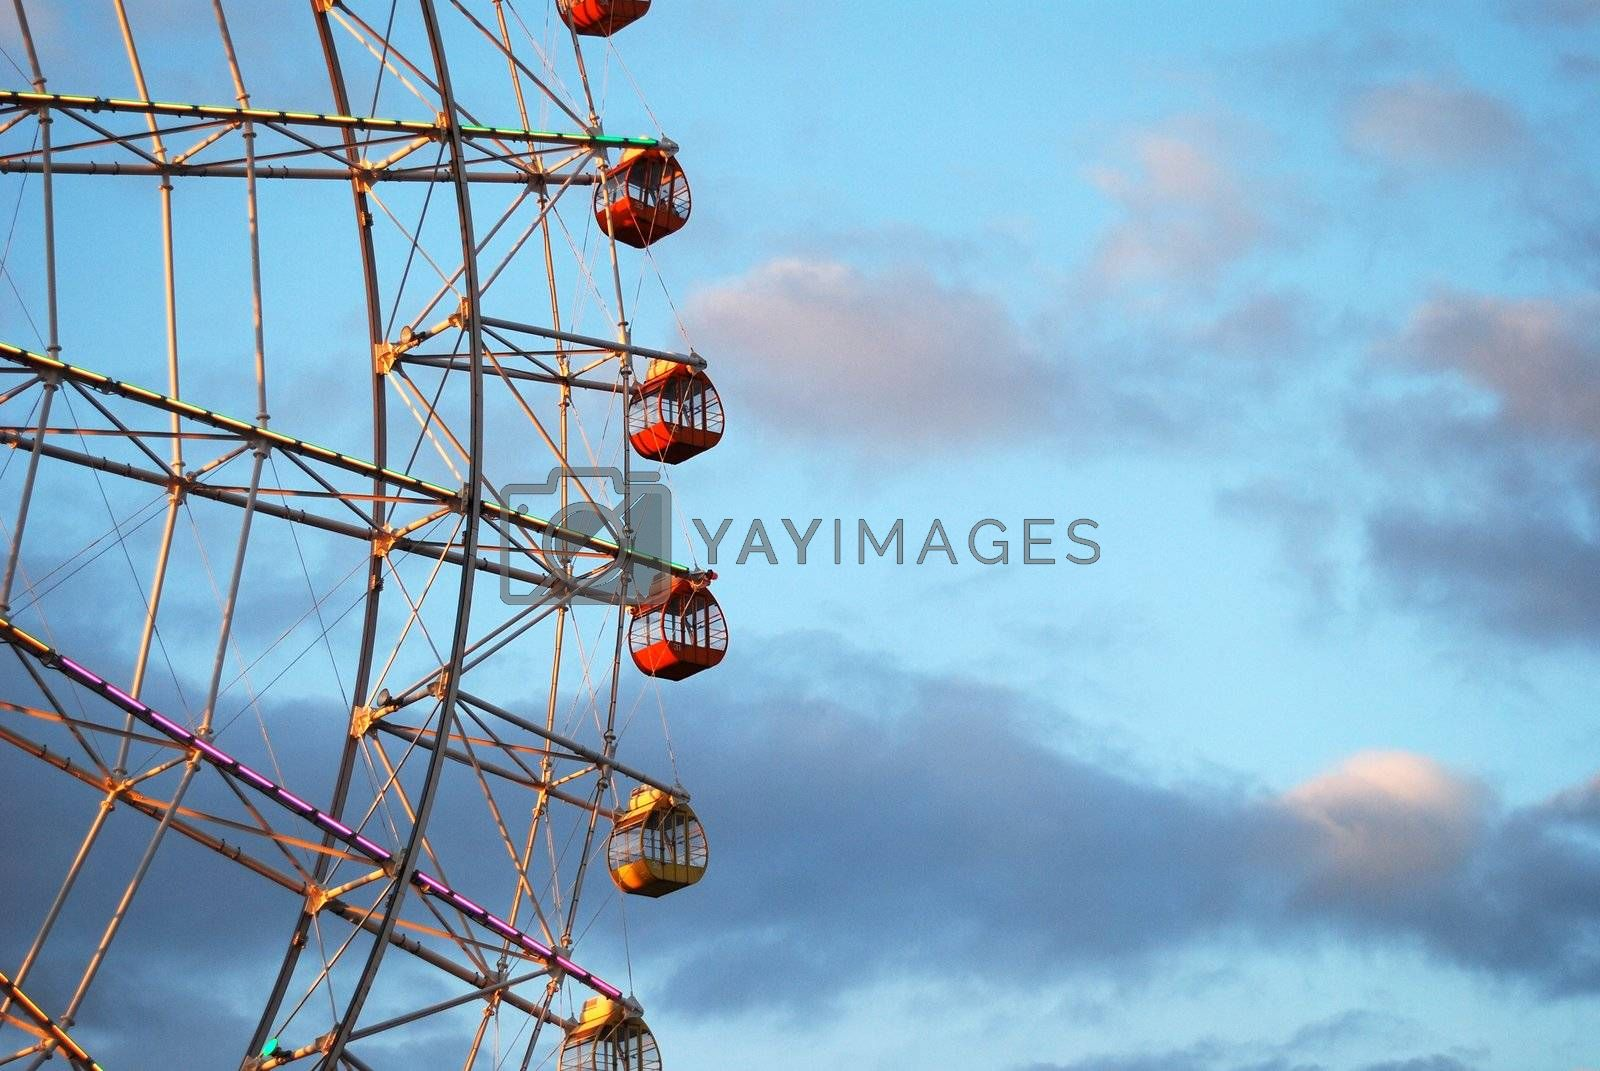 Section of ferris wheel against blue cloudy sky